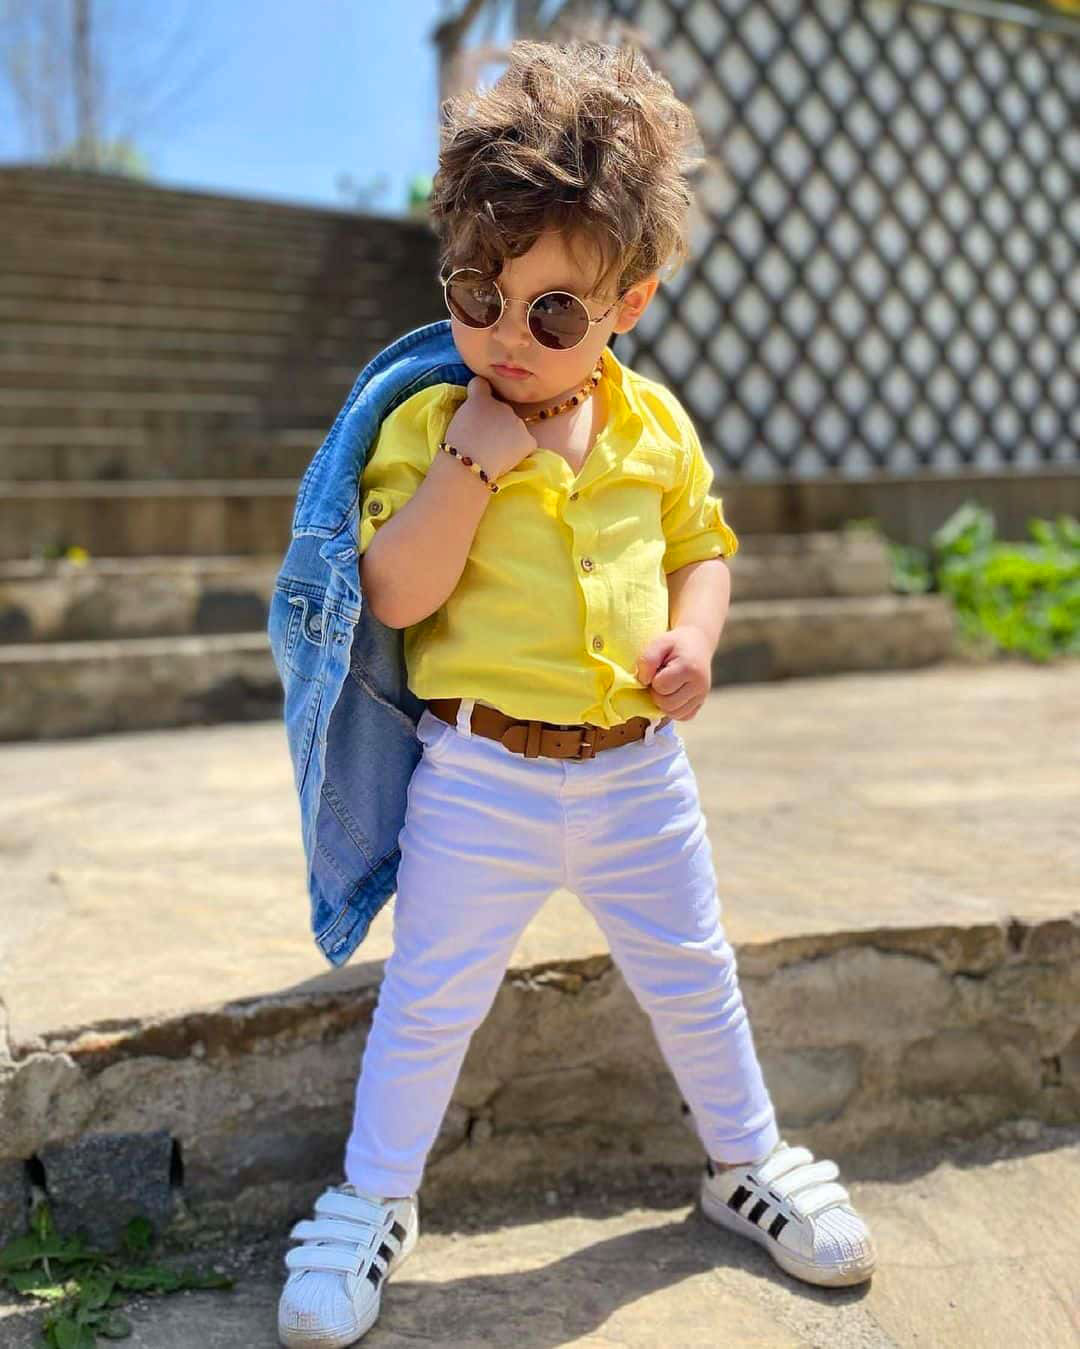 New Stylish Baby Boy Whatsapp Dp Images pictures for download